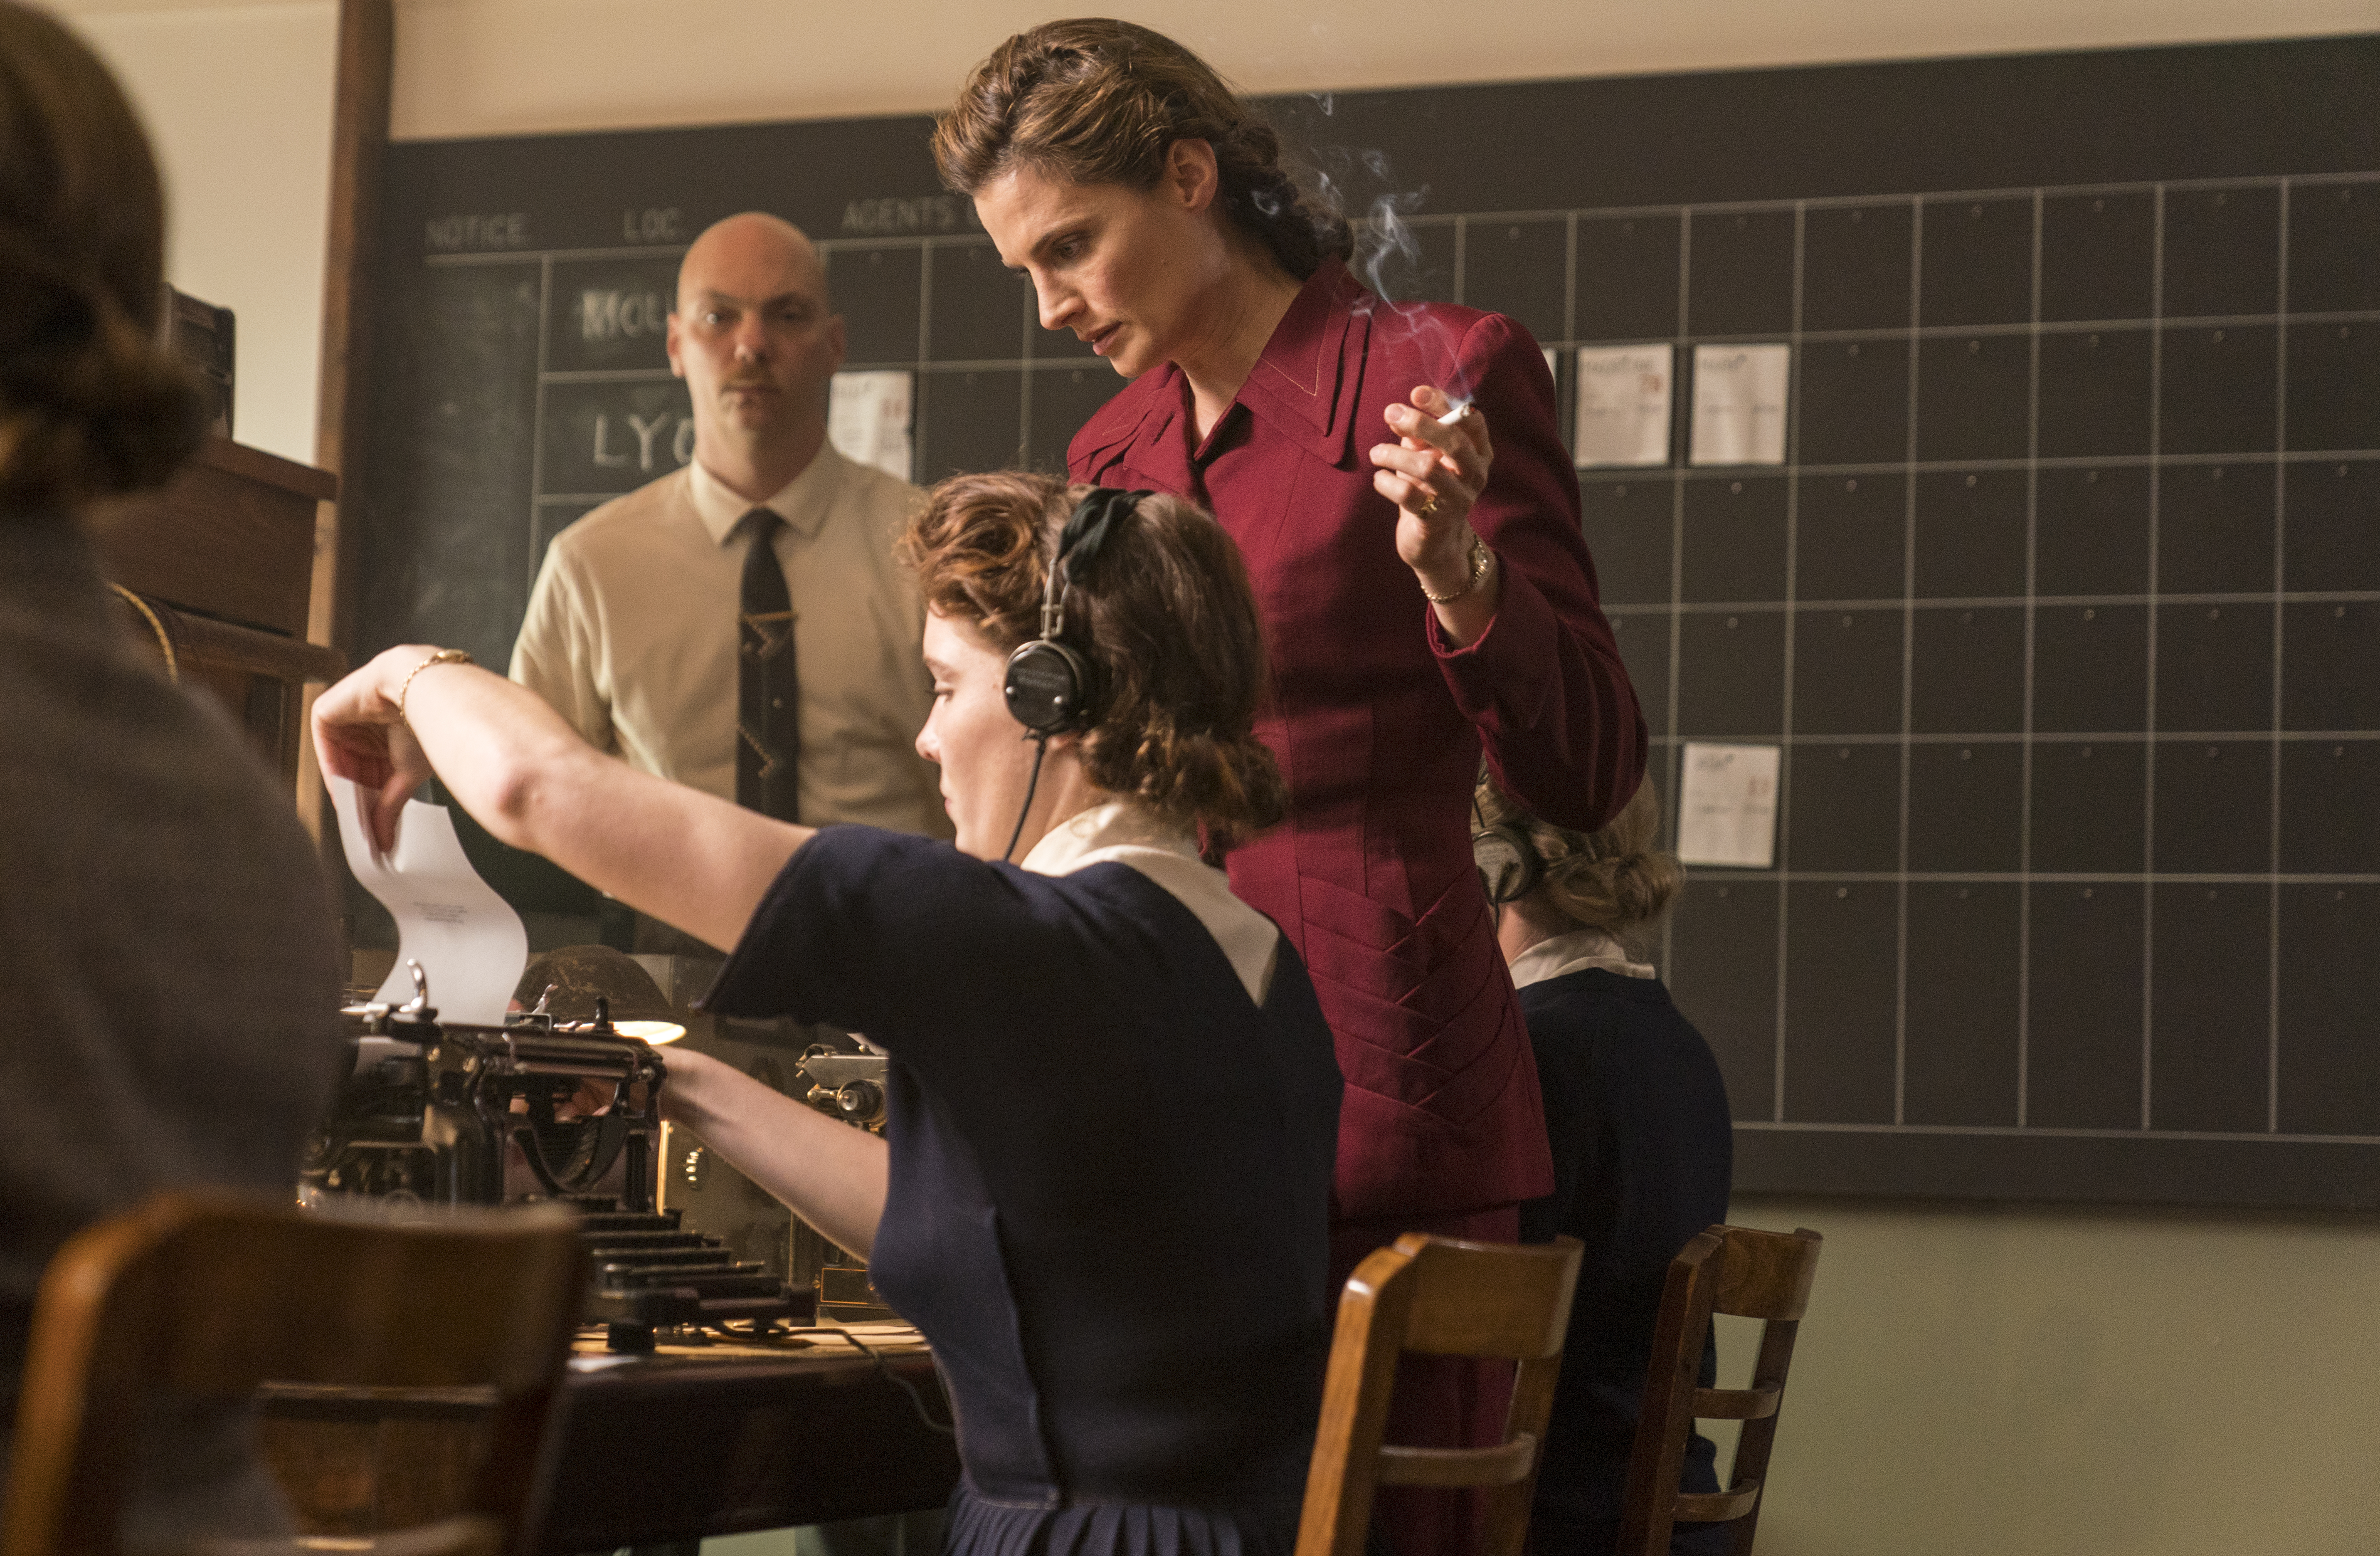 Stana Katic as Vera Atkins in 'A Call to Spy'